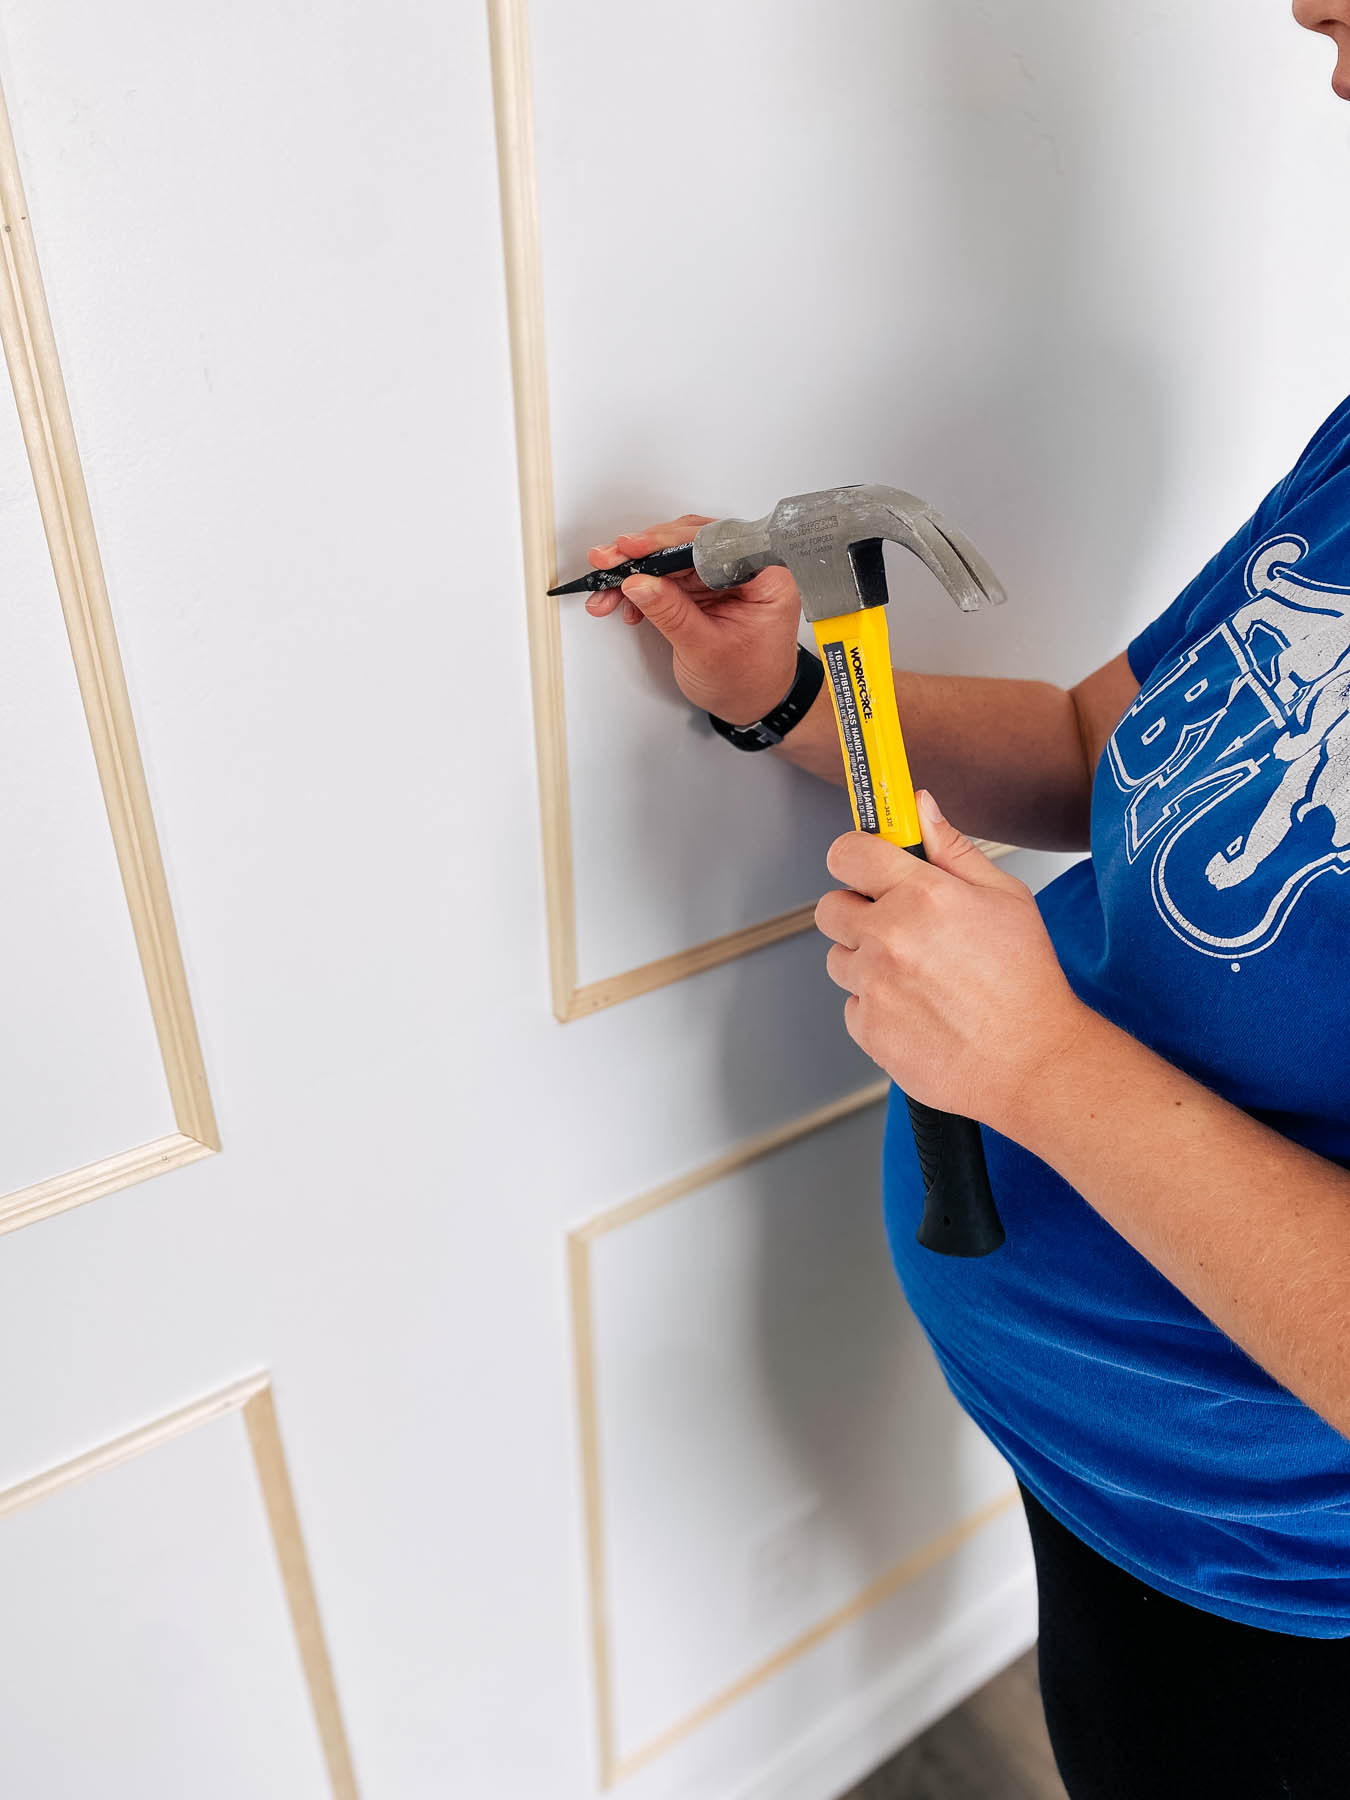 Woman wearing blue shirt uses nail setter on unfinished wall frames.